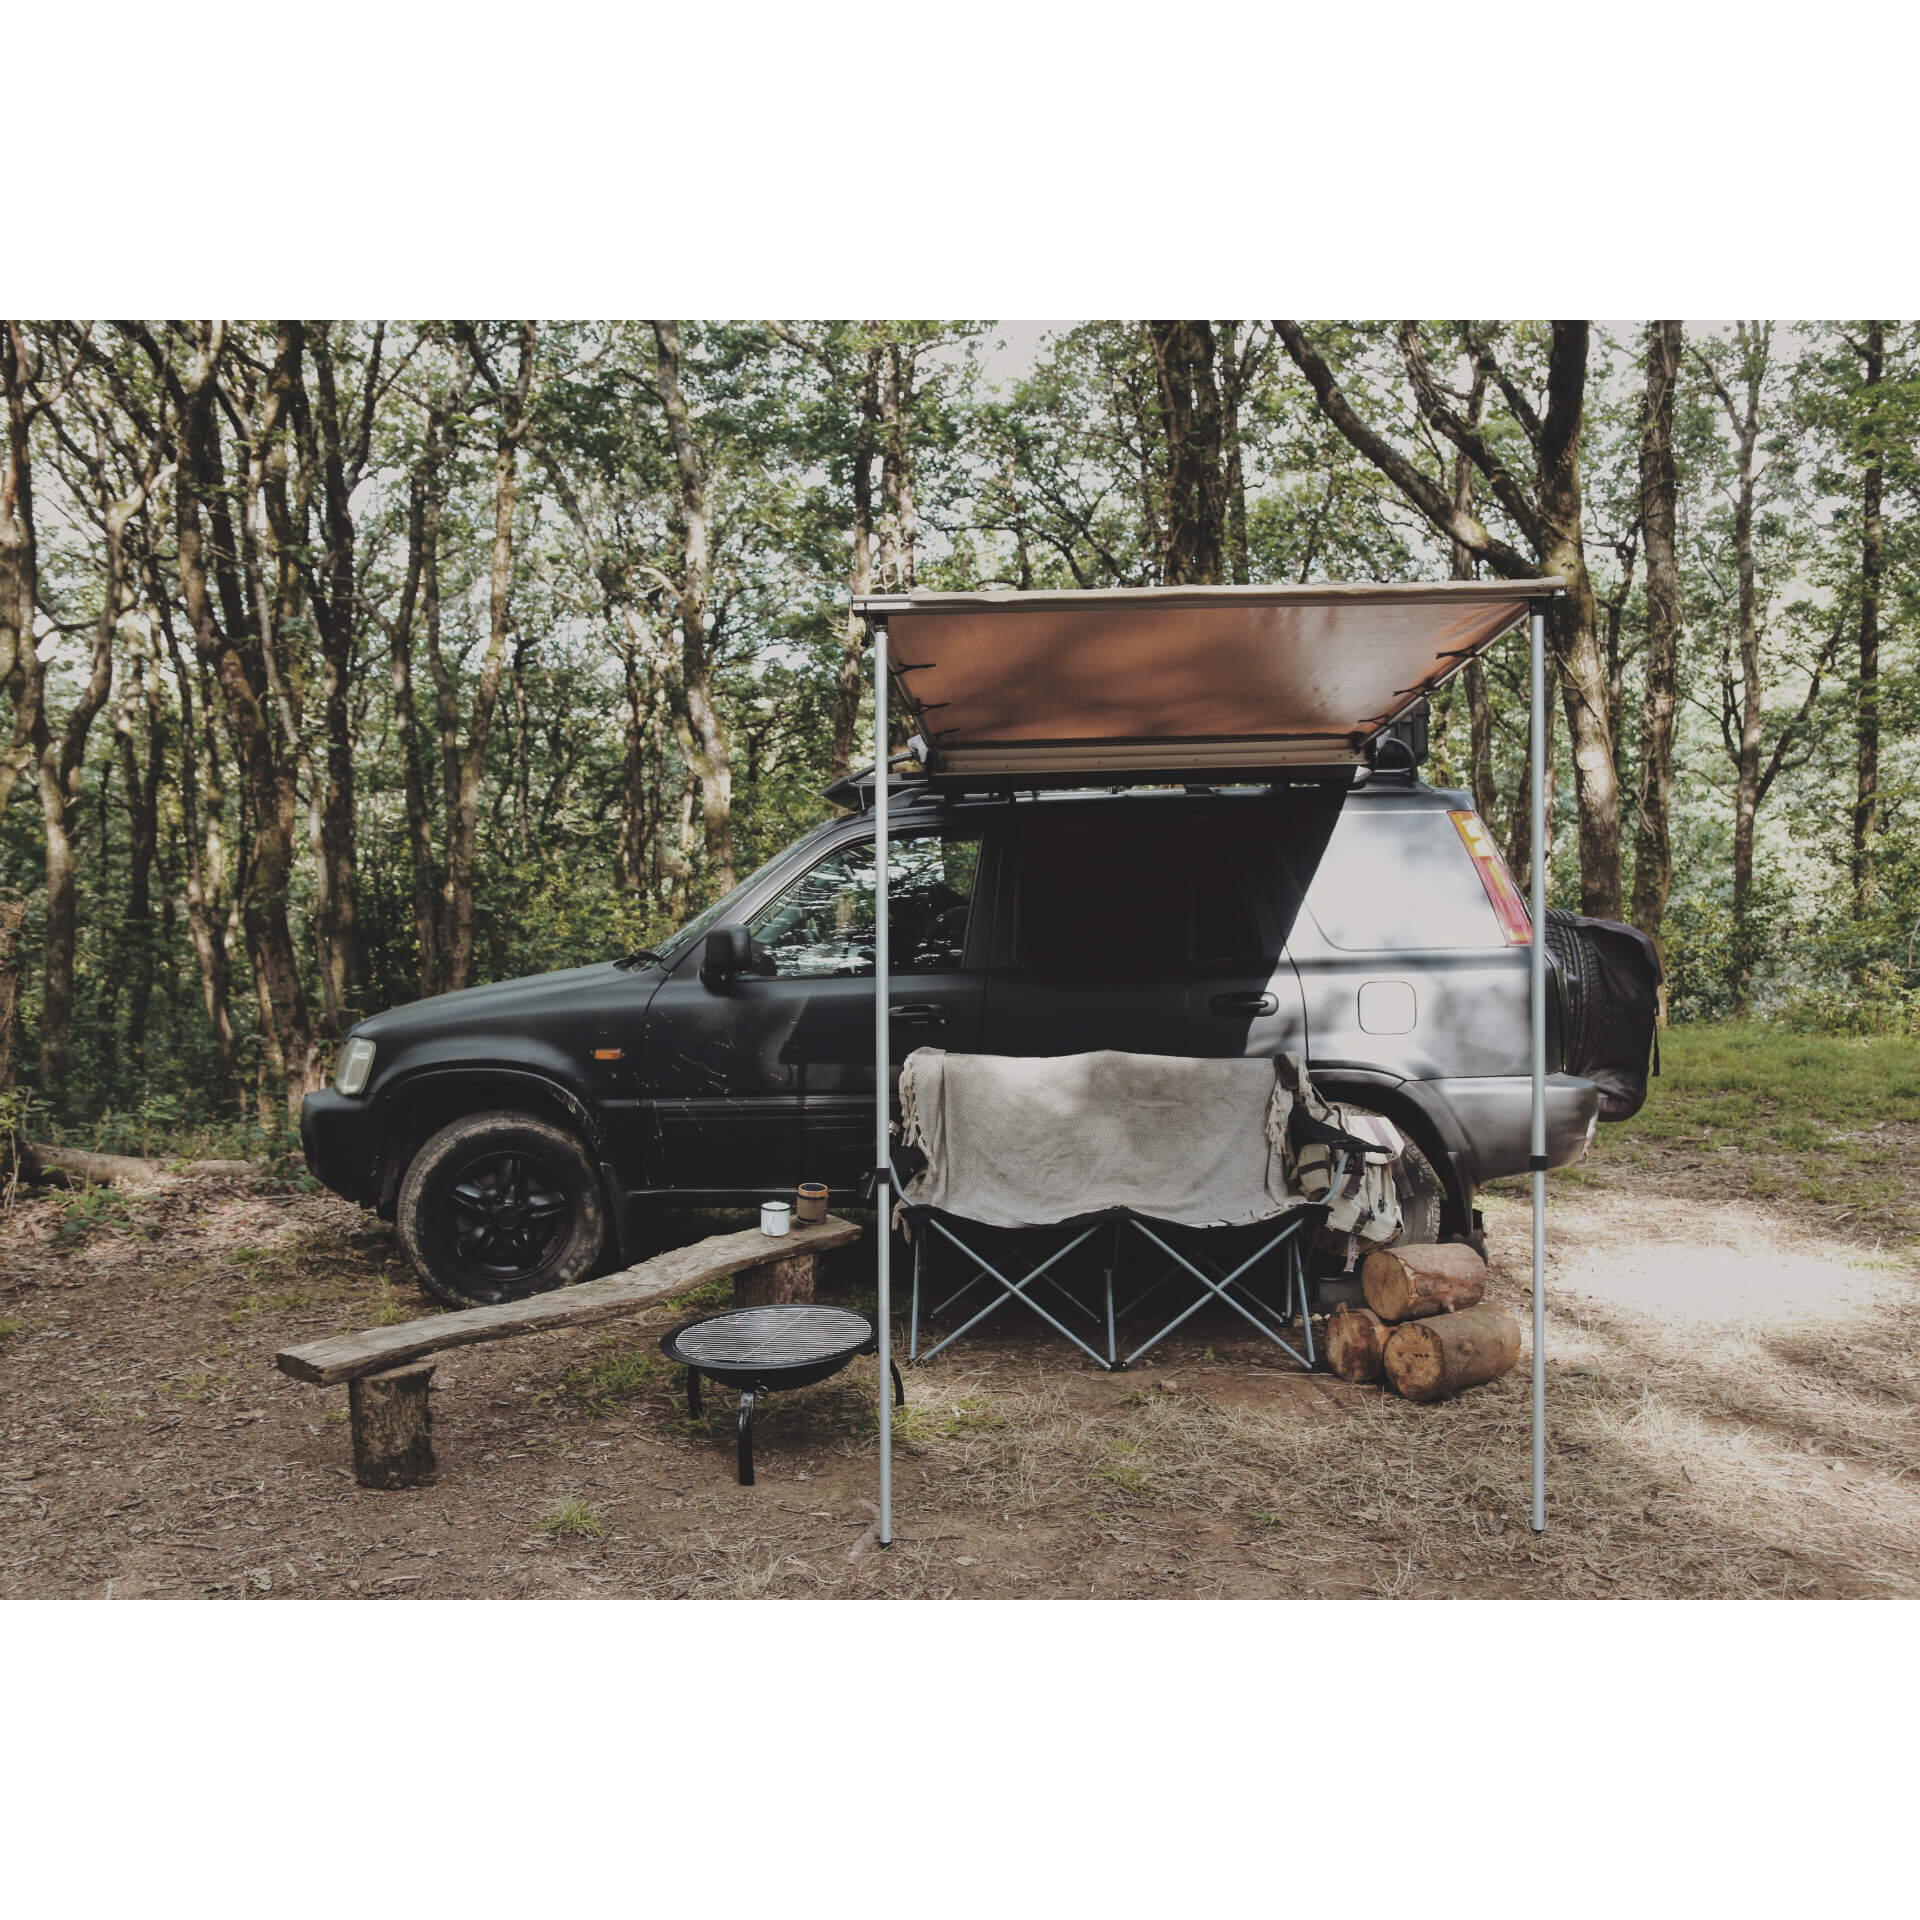 Direct4x4 Accessories UK | Expedition Pull-Out Vehicle ...